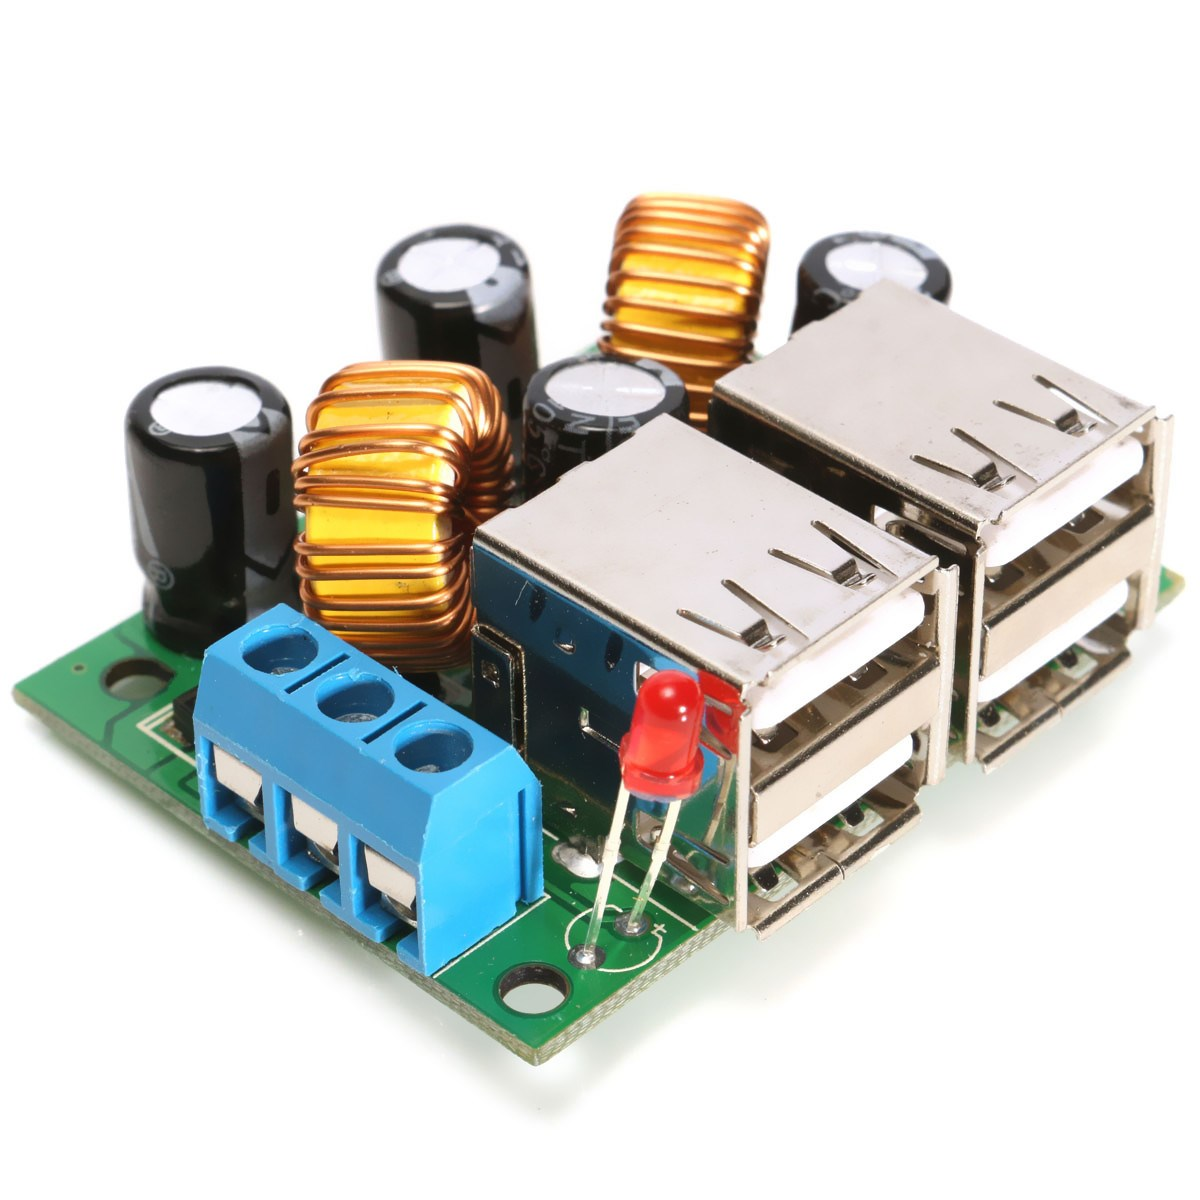 Hot Sale High Quality USB Step-down Power Supply Module New DC 12V 24V 40V to 5V 5A Copper - US(China (Mainland))